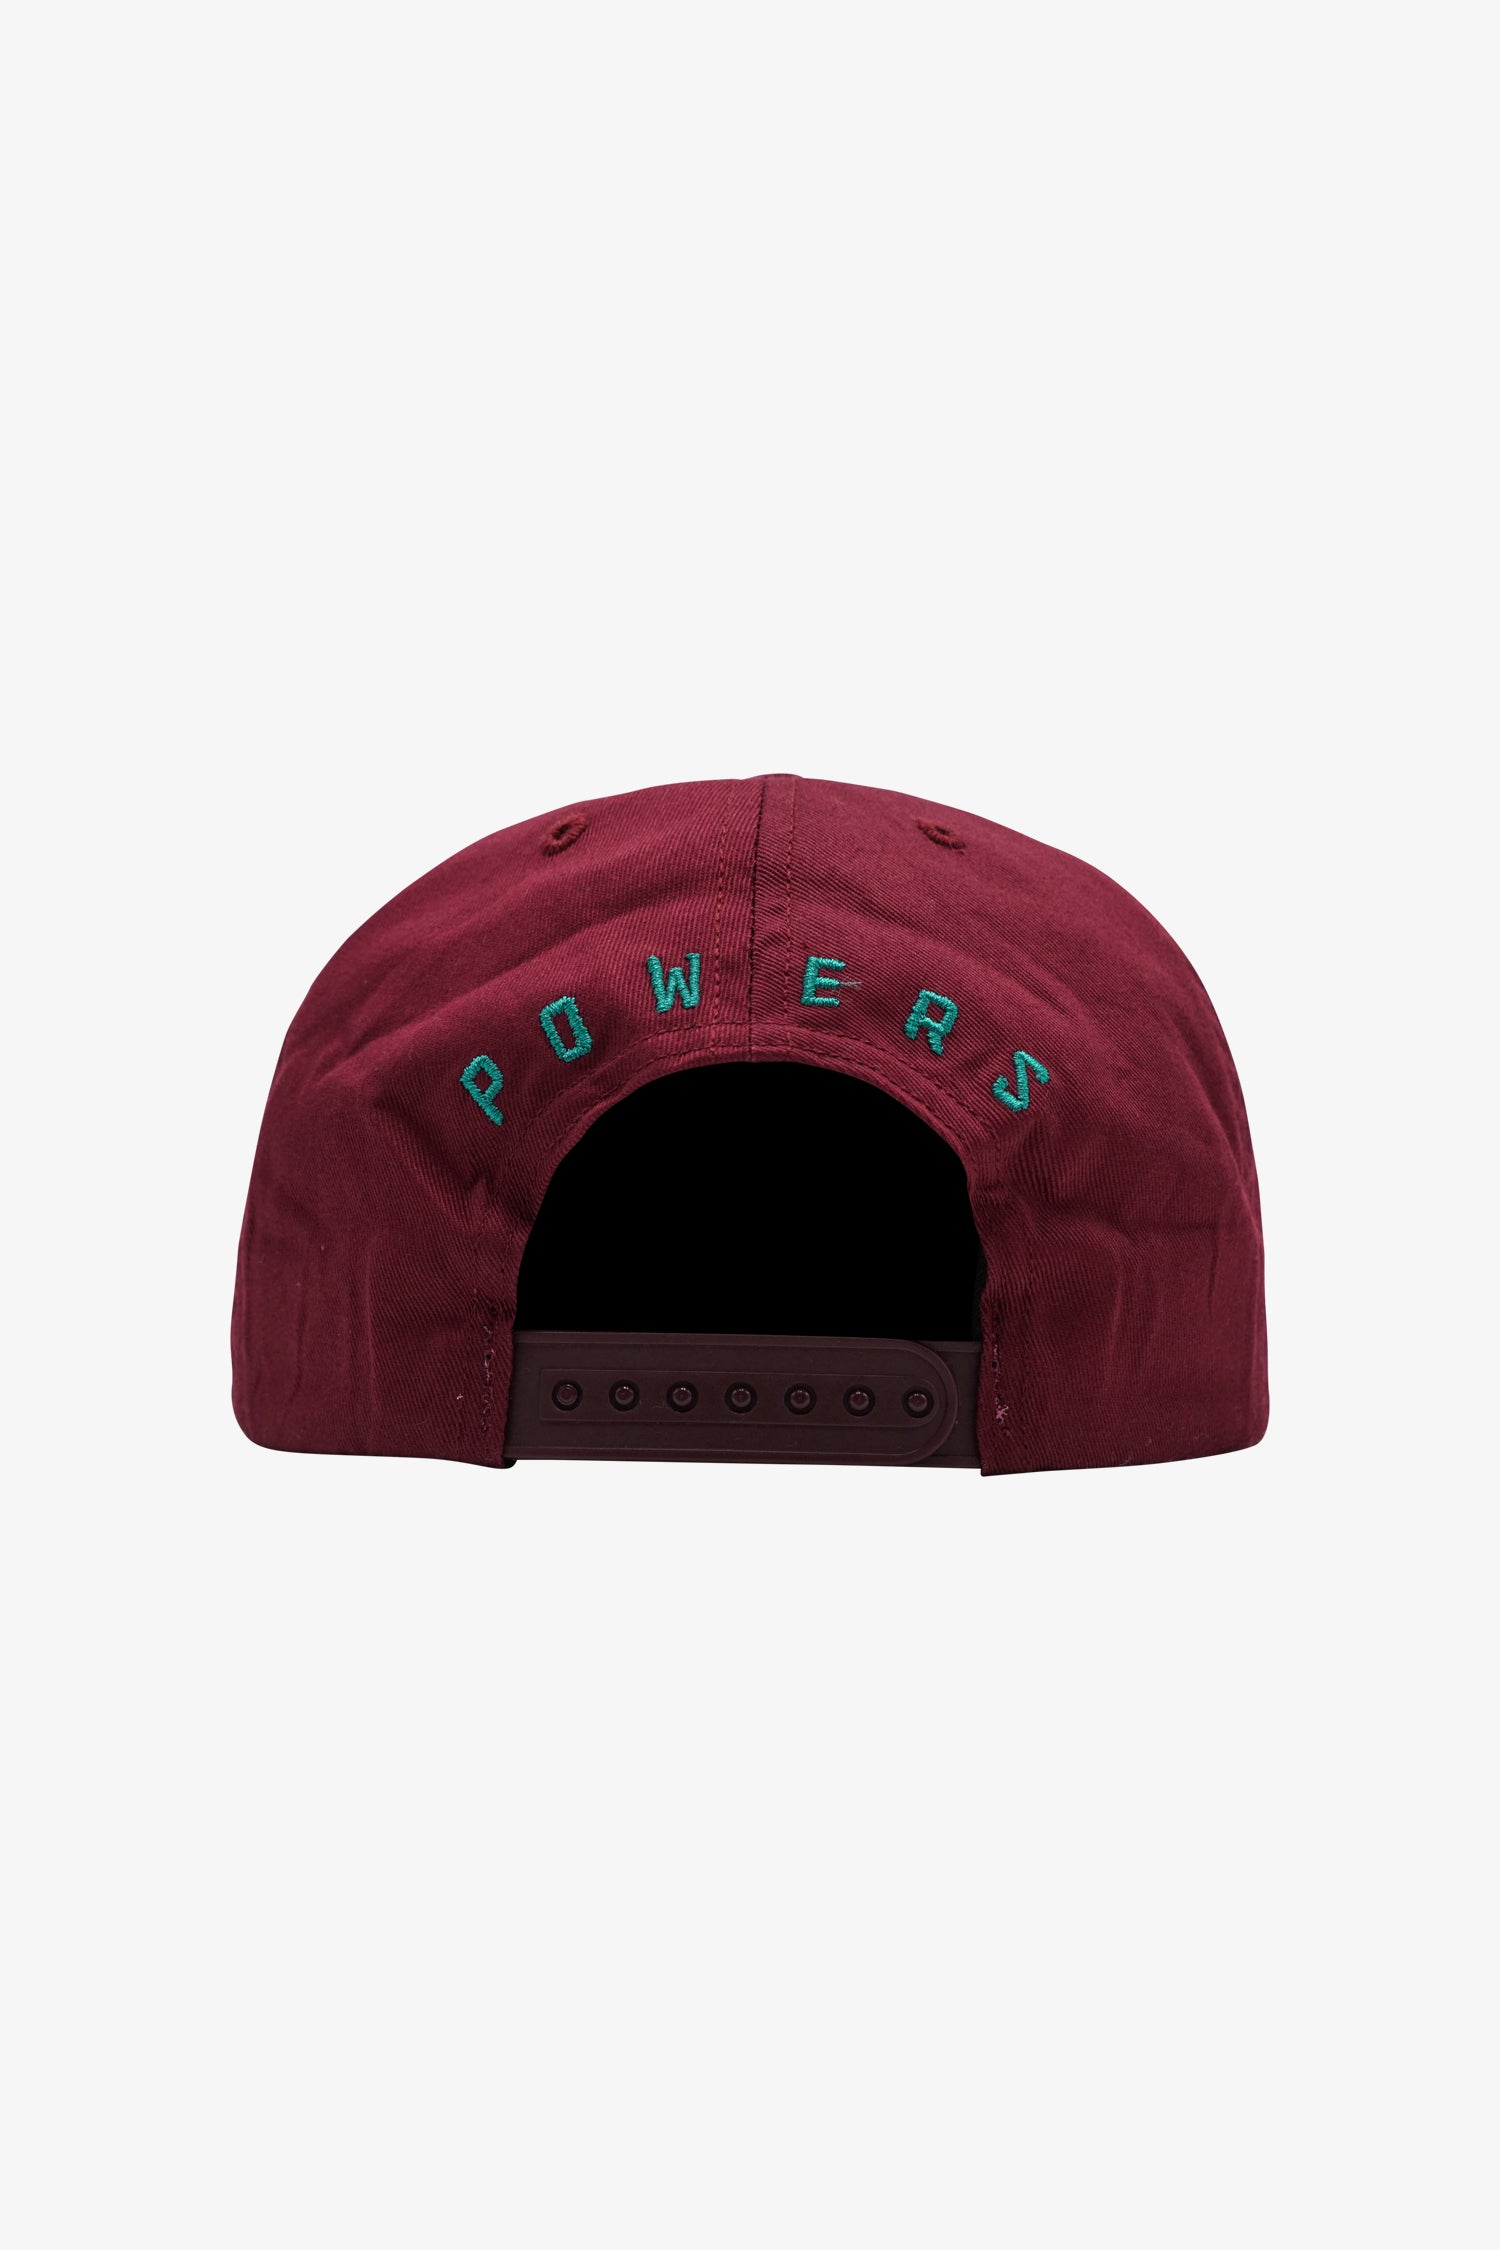 "Selectshop FRAME - POWERS SUPPLY ""P"" Eyelet Cap All-Accessories Dubai"